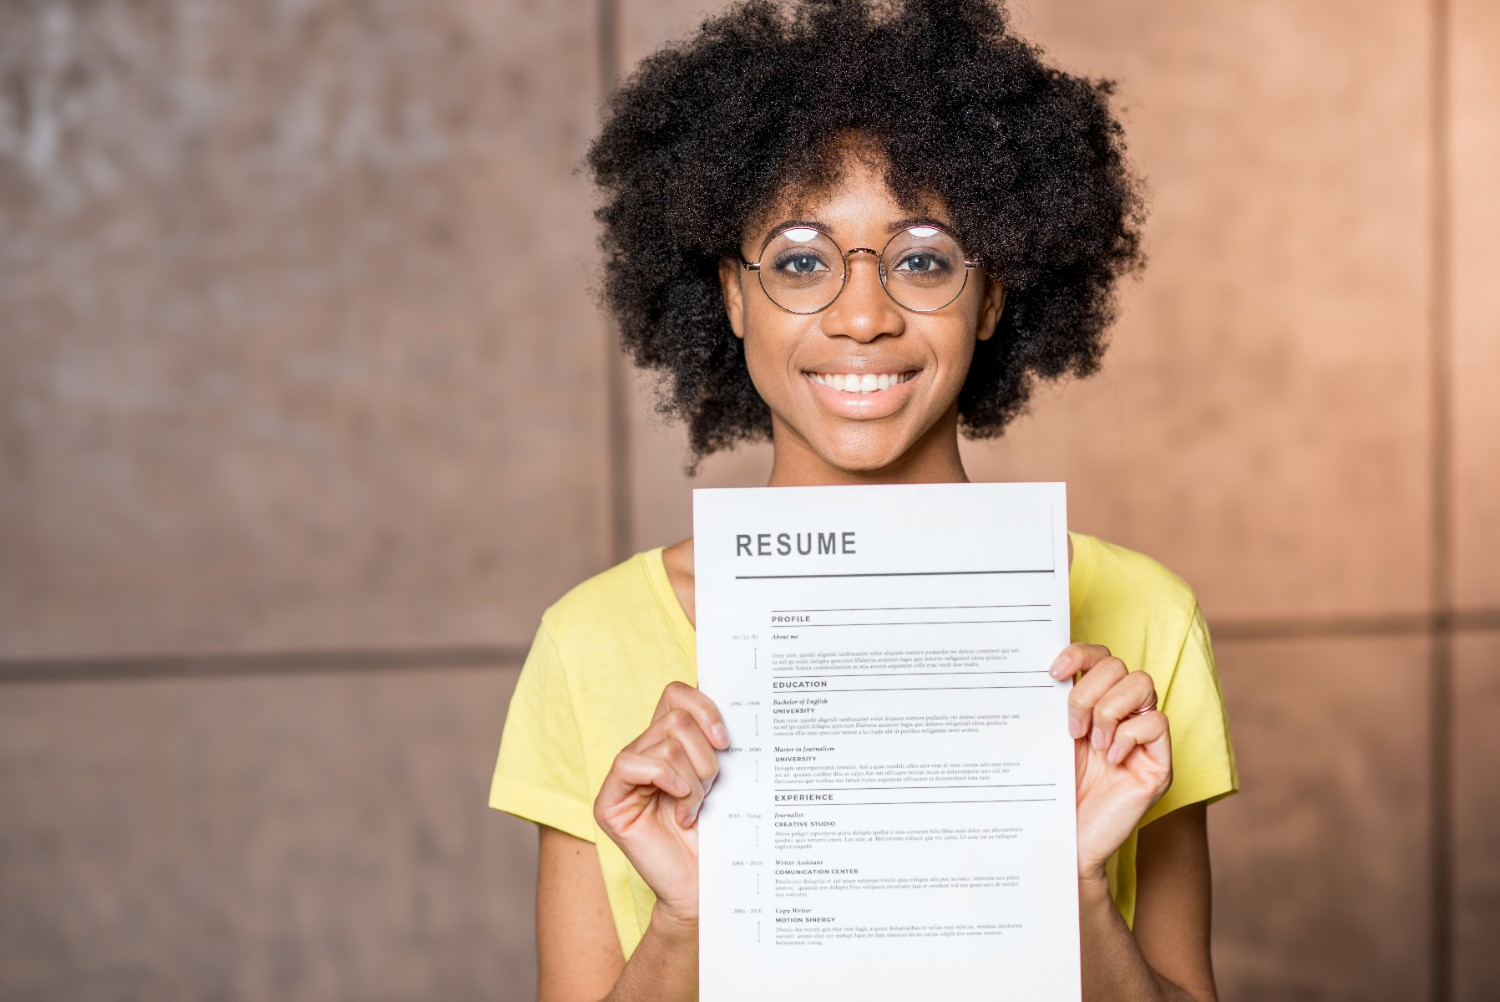 Woman holding a CV she's printed from an office printer